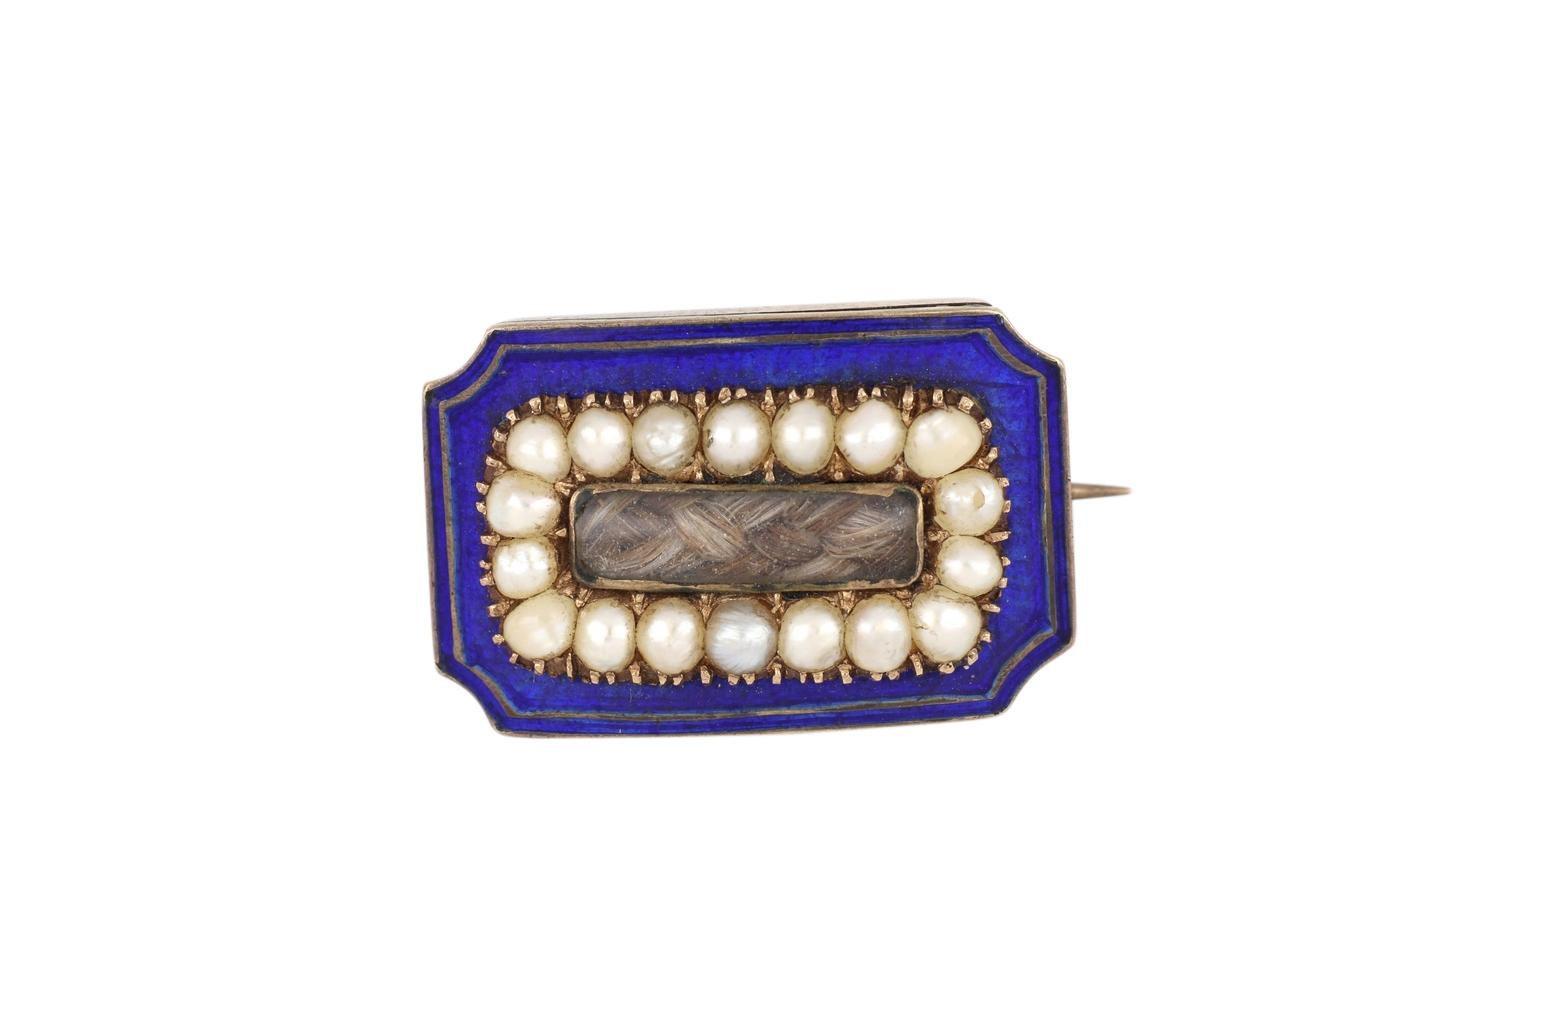 Rose gold & blue enamel mourning brooch set with seed pearls